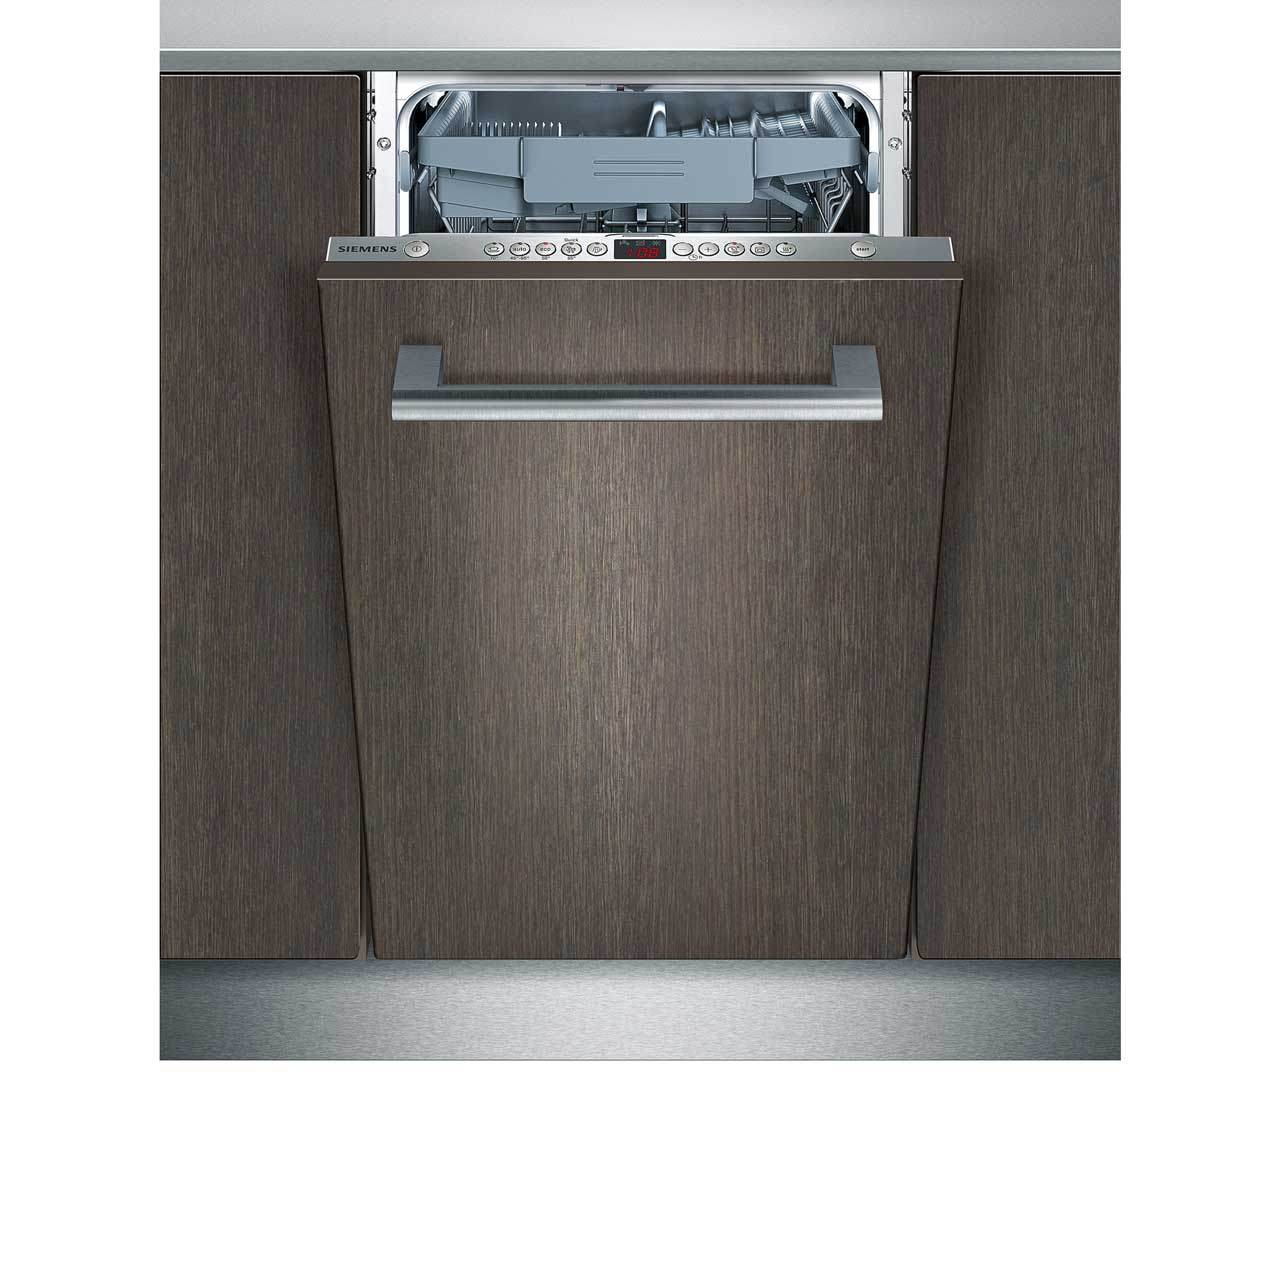 Siemens IQ500 SR65T081GB Integrated Slimline Dishwasher in Stainless Steel